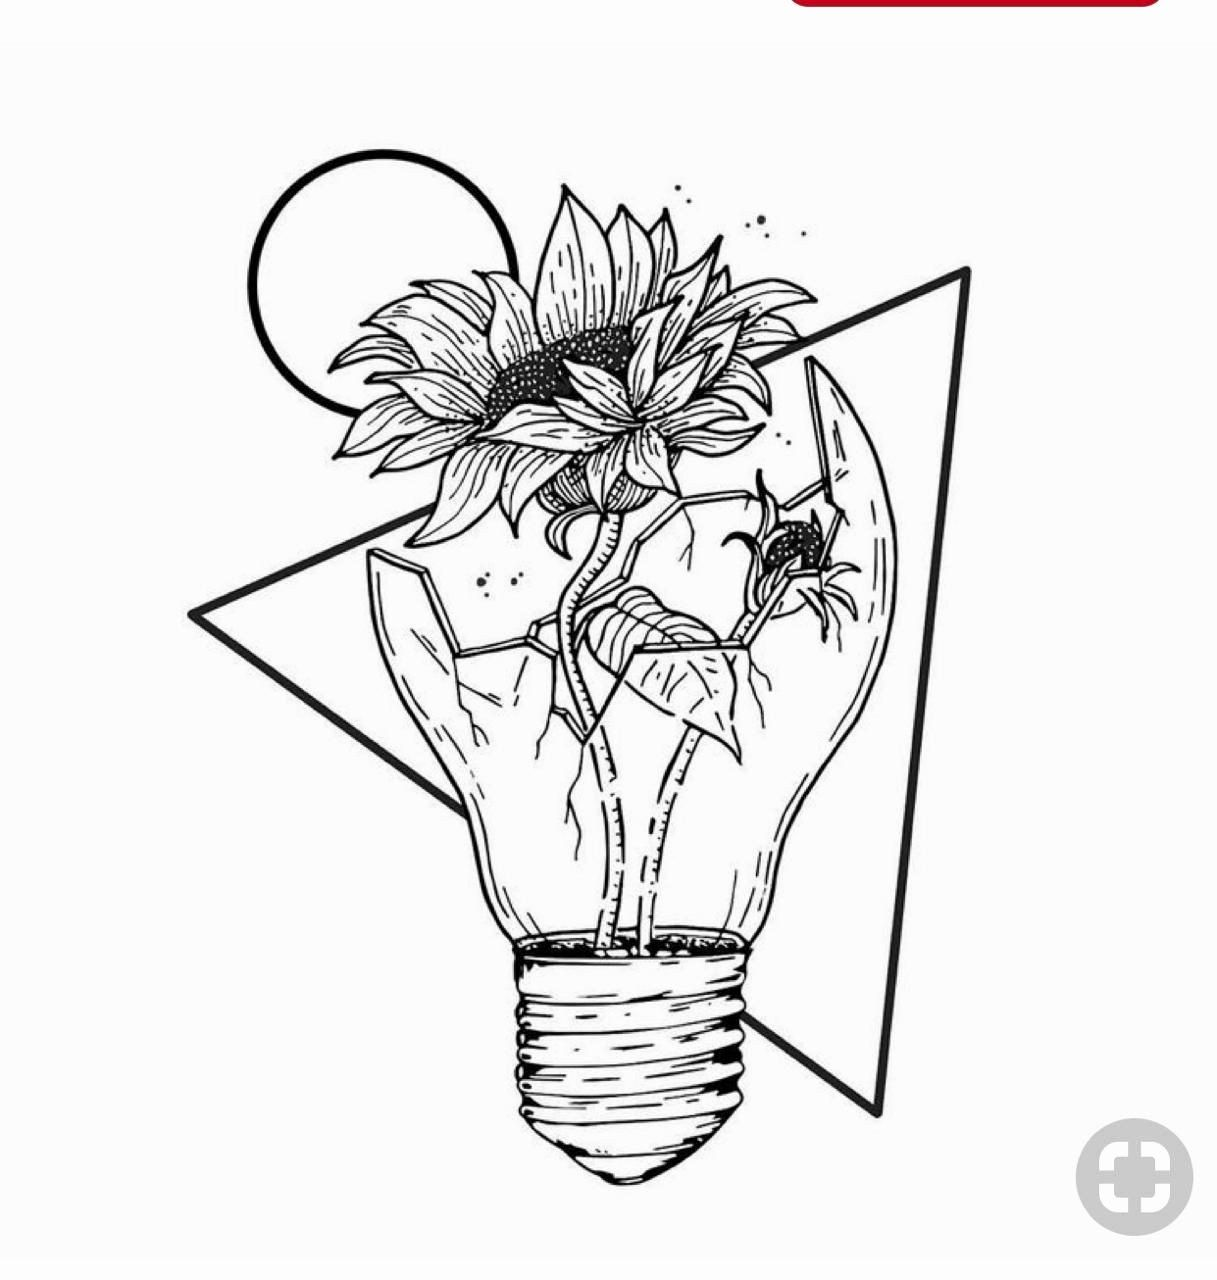 Coloring Outer Space Unique Aesthetic Space Tumblr Coloring Pages Kesho Wazo Sunflower Drawing Flower Drawing Space Drawings